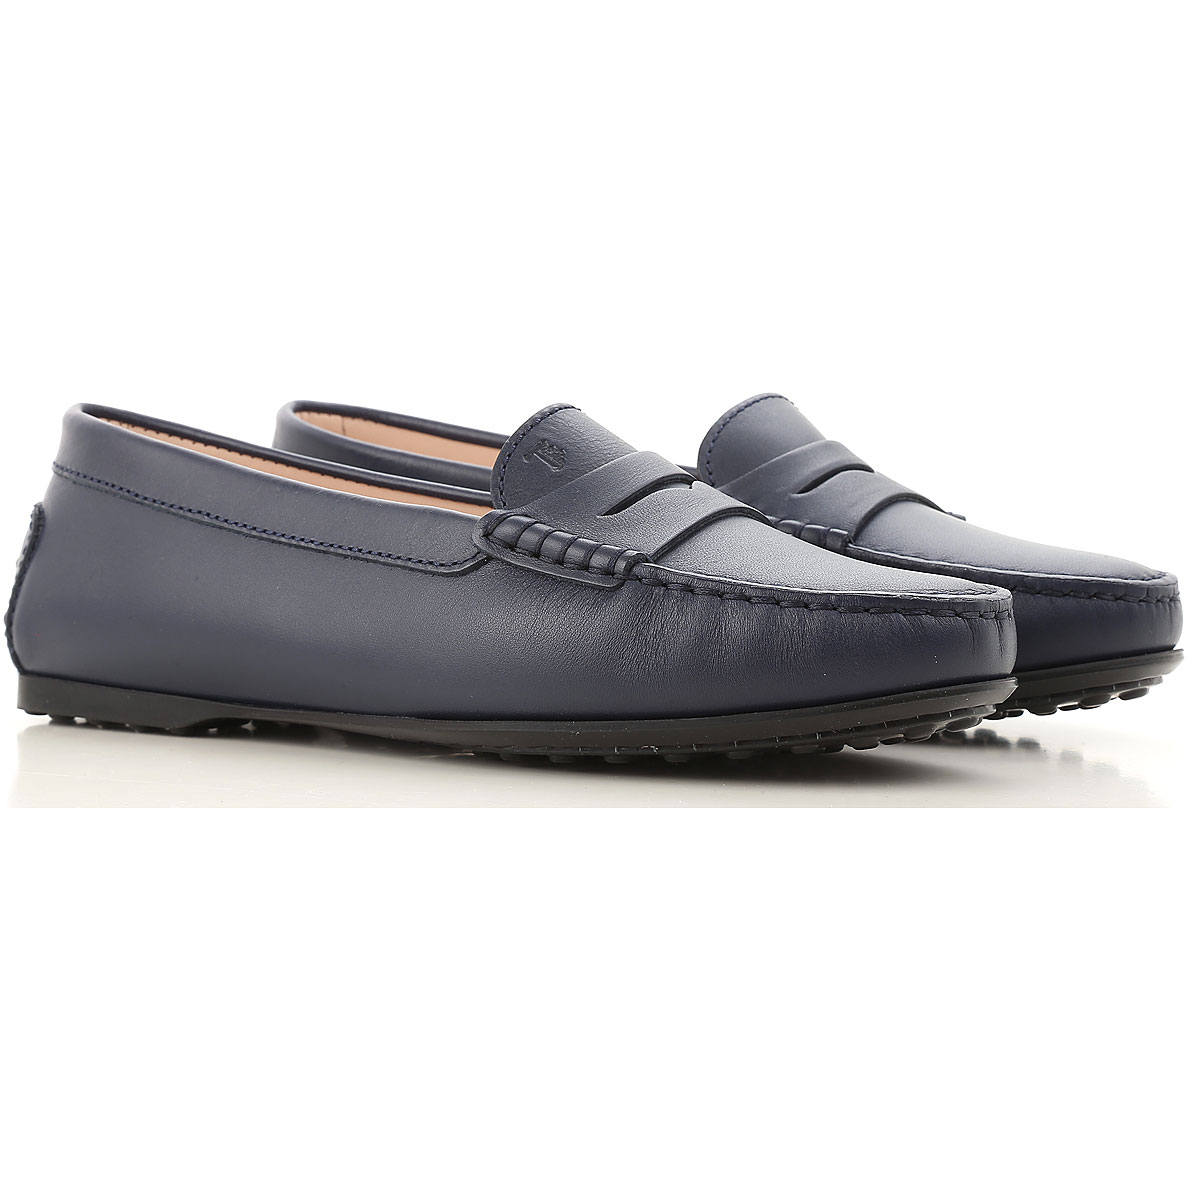 Image of Tods Driver Loafer Shoes for Women, Blue, Leather, 2017, 5 8.5 9.5